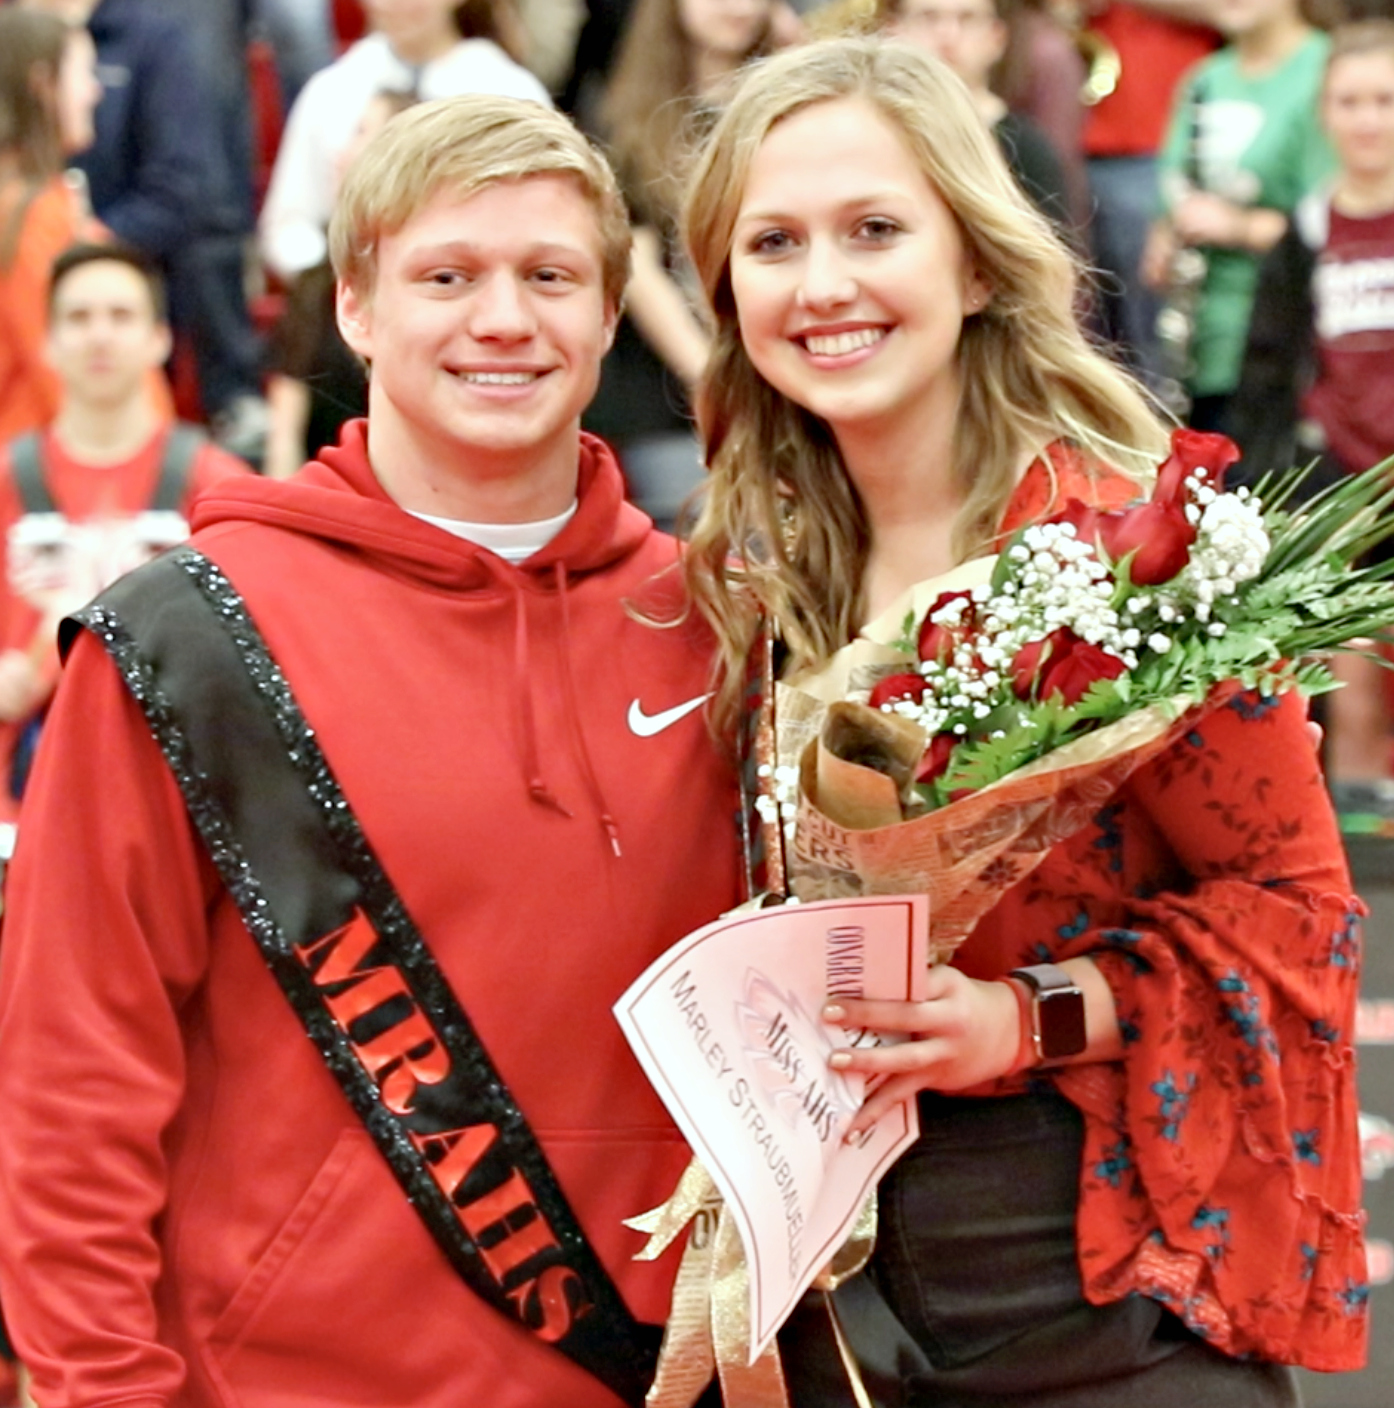 Seniors Cale Nanny and Marley Straubmueller are crowned as Mr. and Miss AHS at the red out pep rally on Feb. 6, 2018 at Argyle High School in Argyle, TX. (Photo by: Pam Arrington)